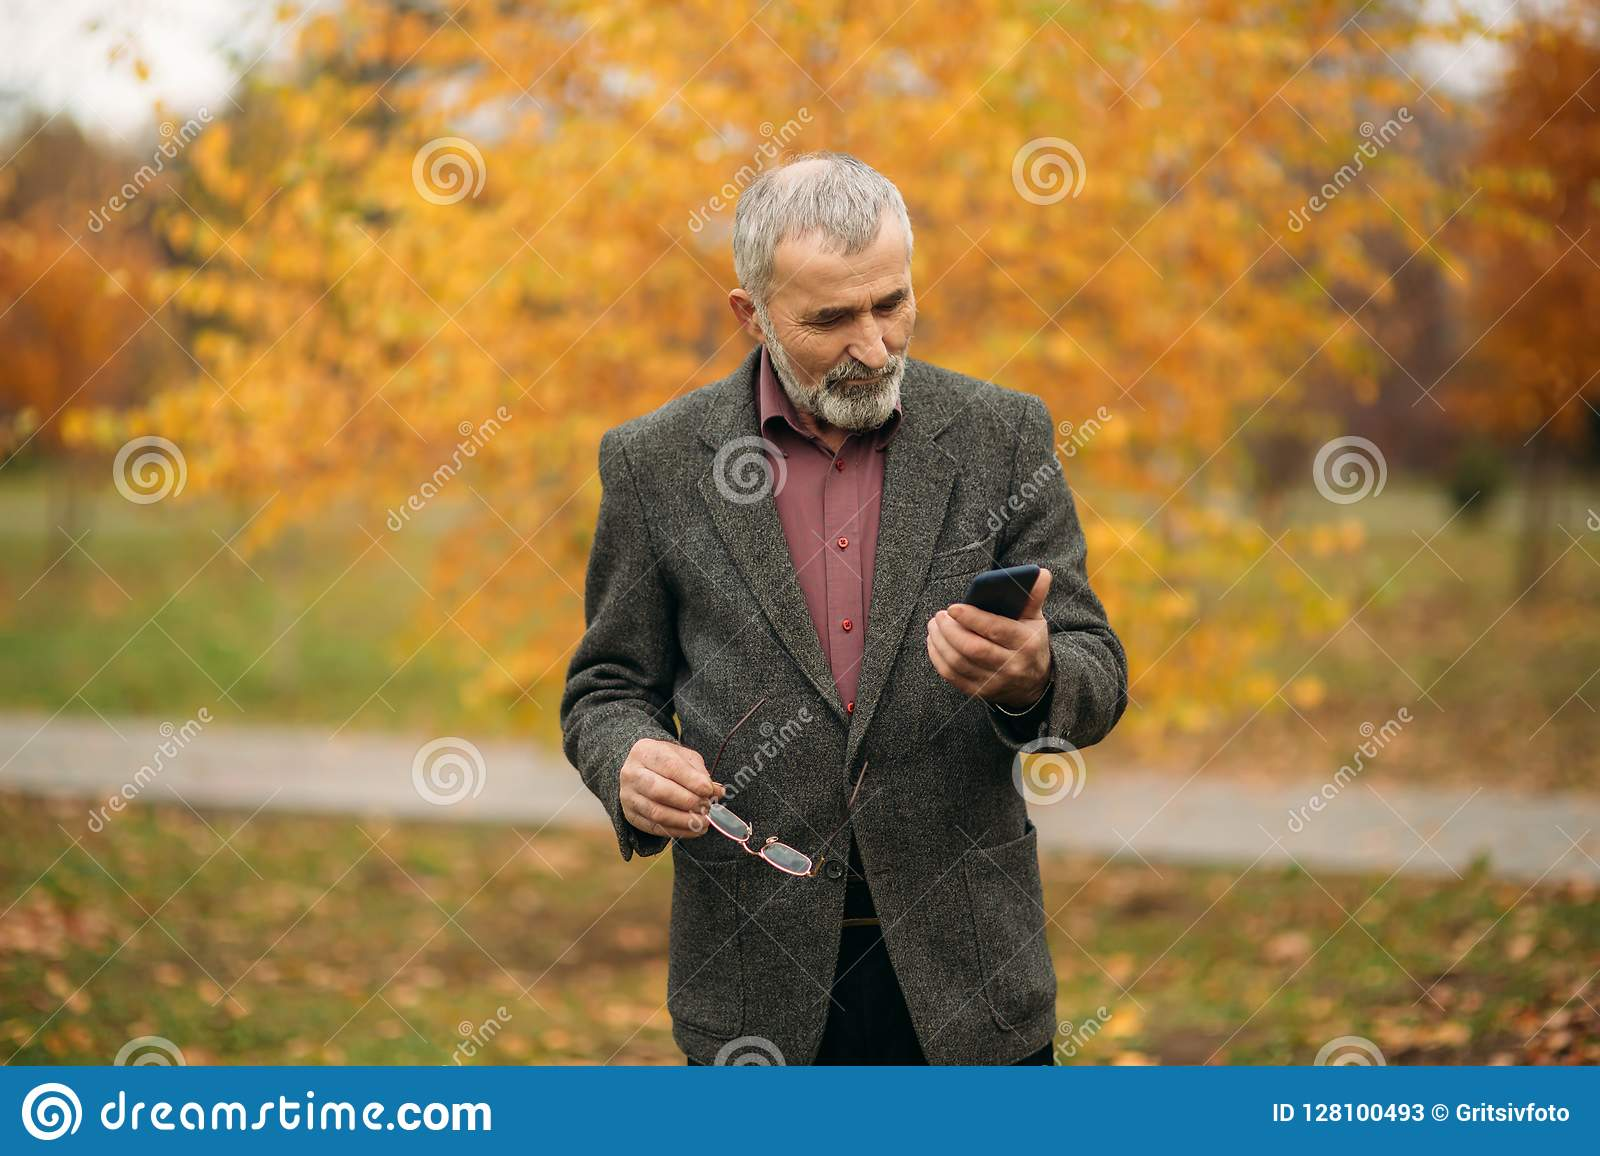 A handsome elderly man with beard in glasses is using a phone. Walk in the park in autumn